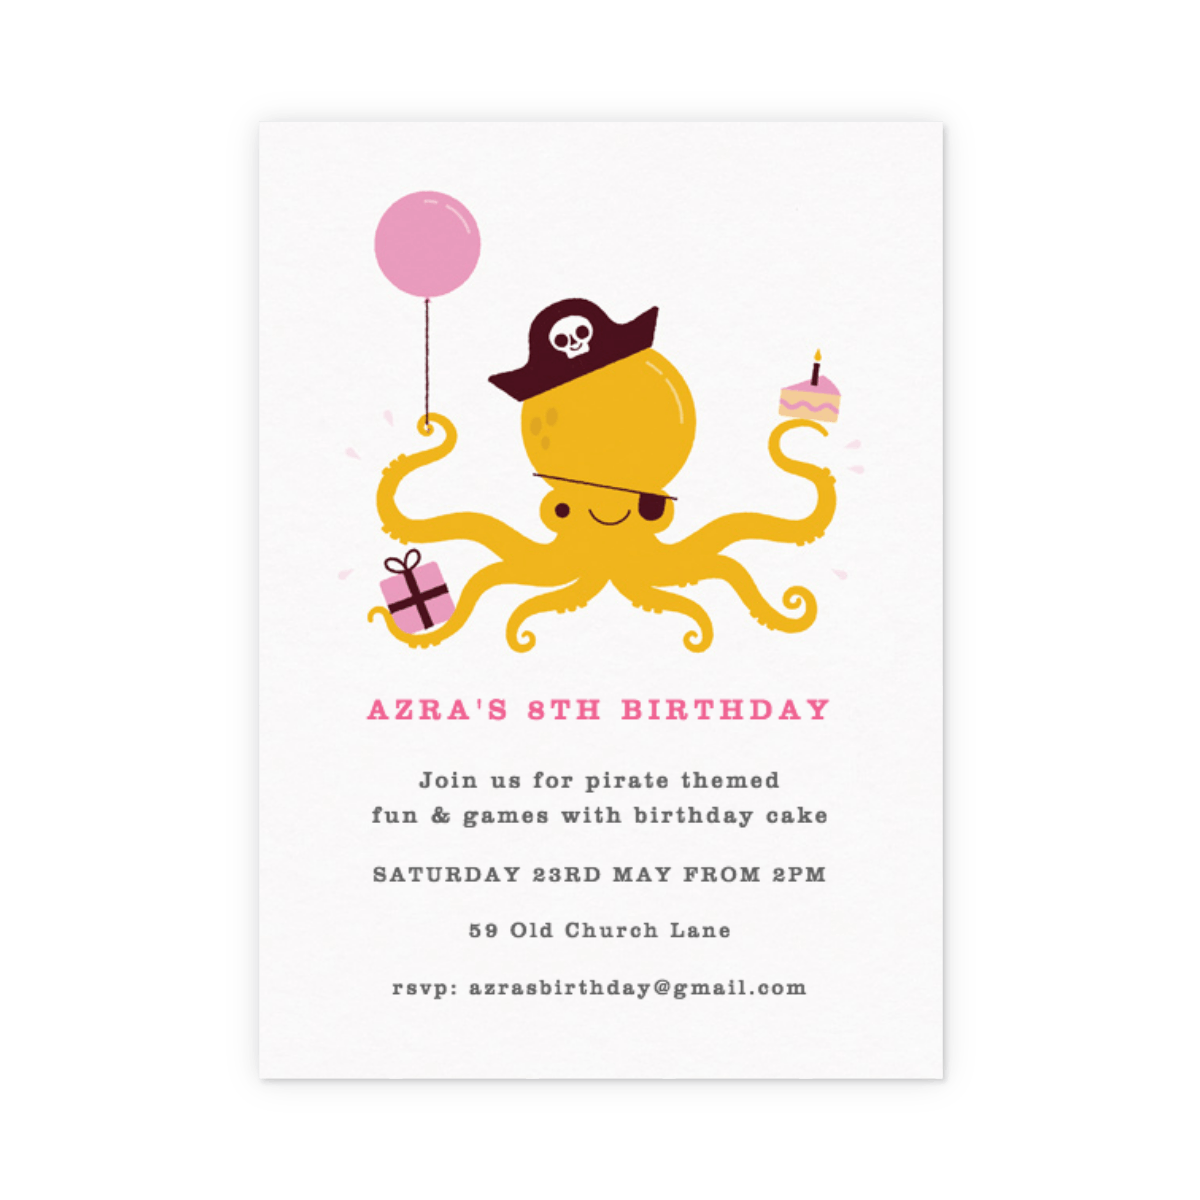 Https%3a%2f%2fwww.papier.com%2fproduct image%2f21877%2f4%2fpirate octopus pink 5515 vorderseite 1492697231.png?ixlib=rb 1.1